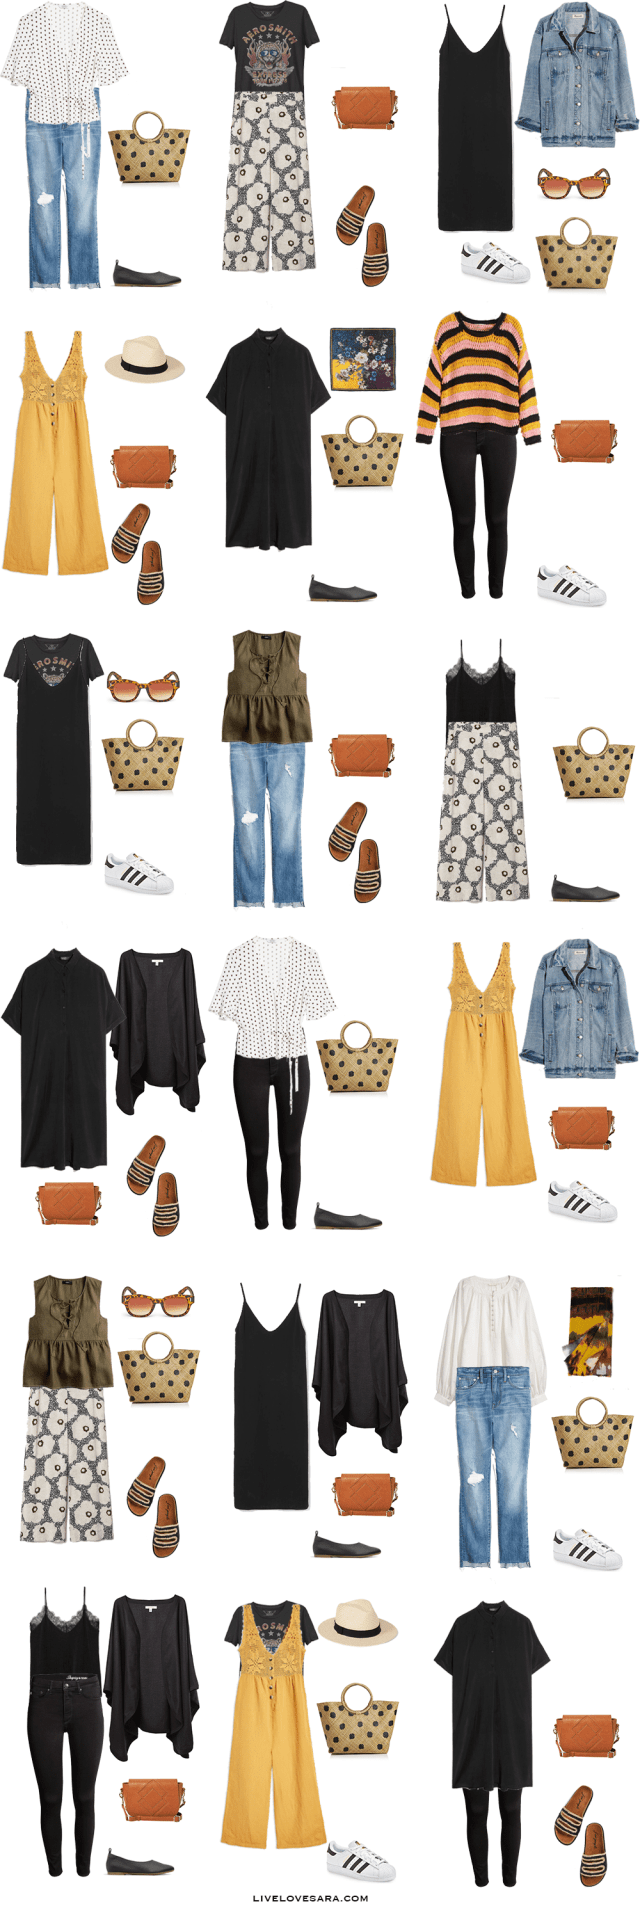 What to Pack for New York City - Packing Light - livelovesara #travelwardrobesummer